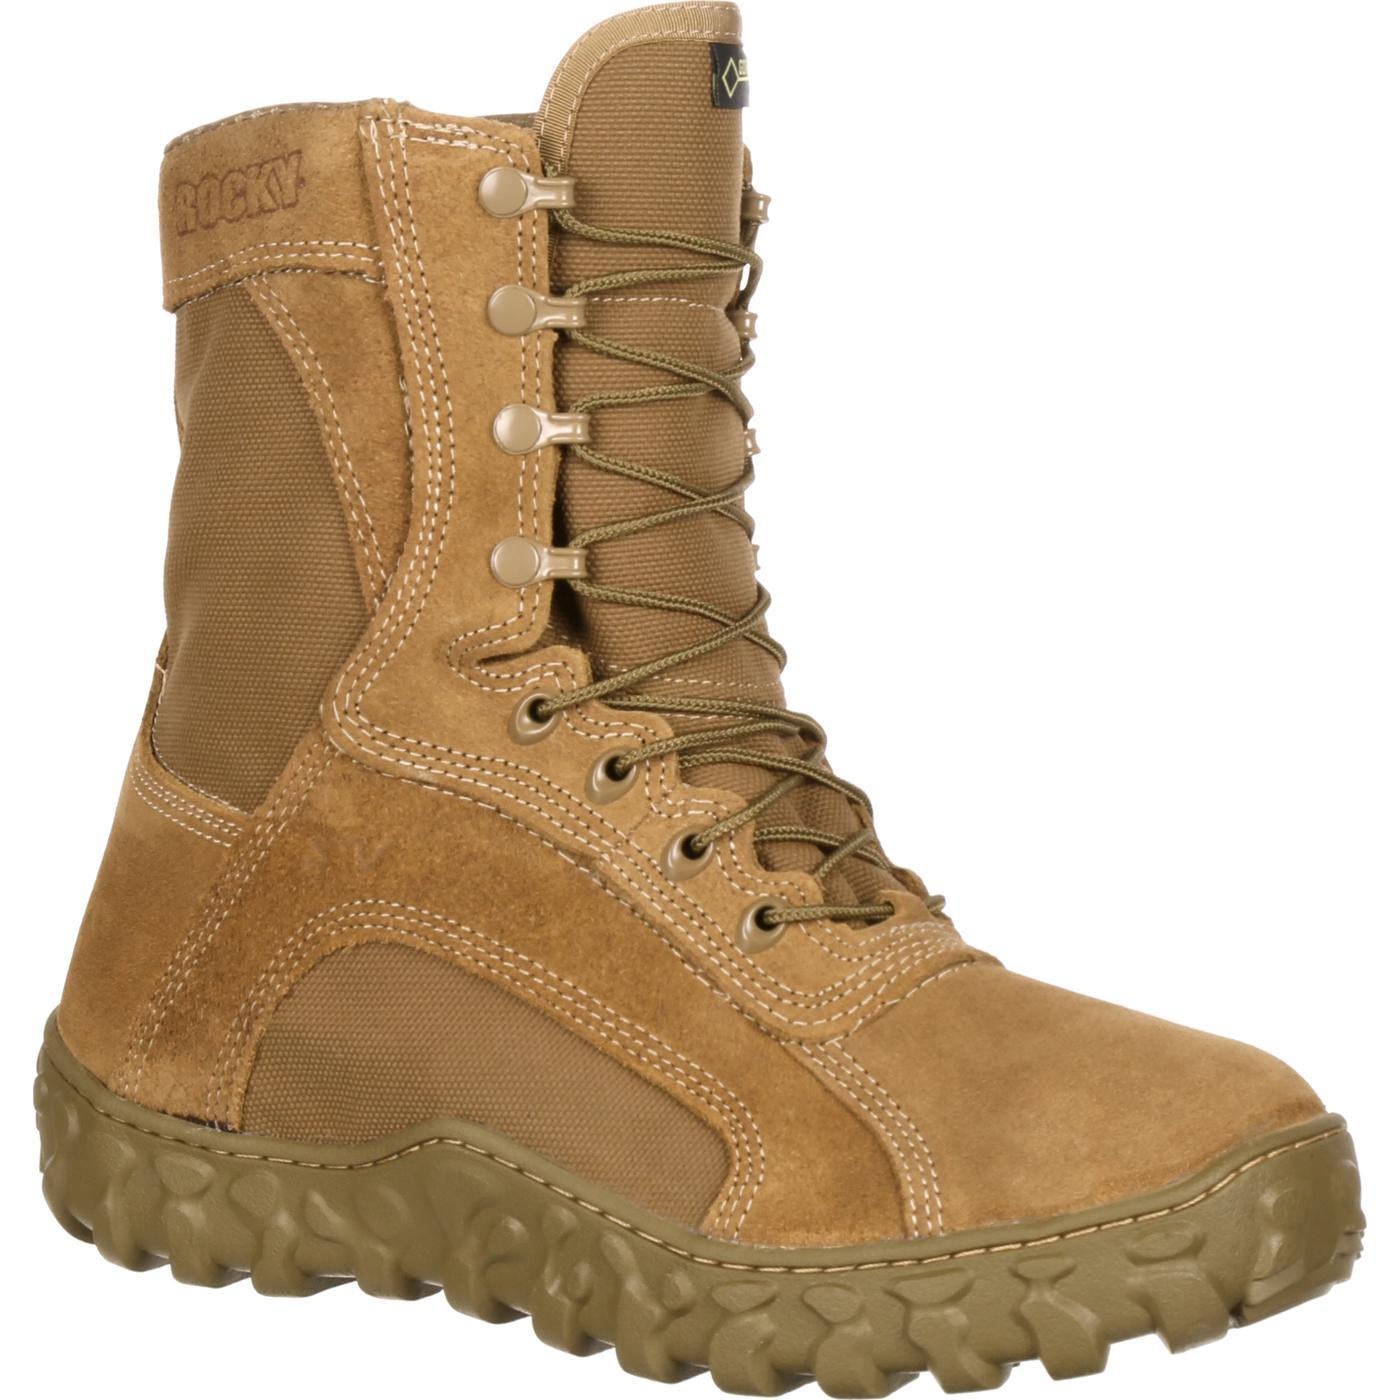 Rocky FQ00104-1 S2V GORE-TEX Waterproof Insulated Tactical Military Boot by